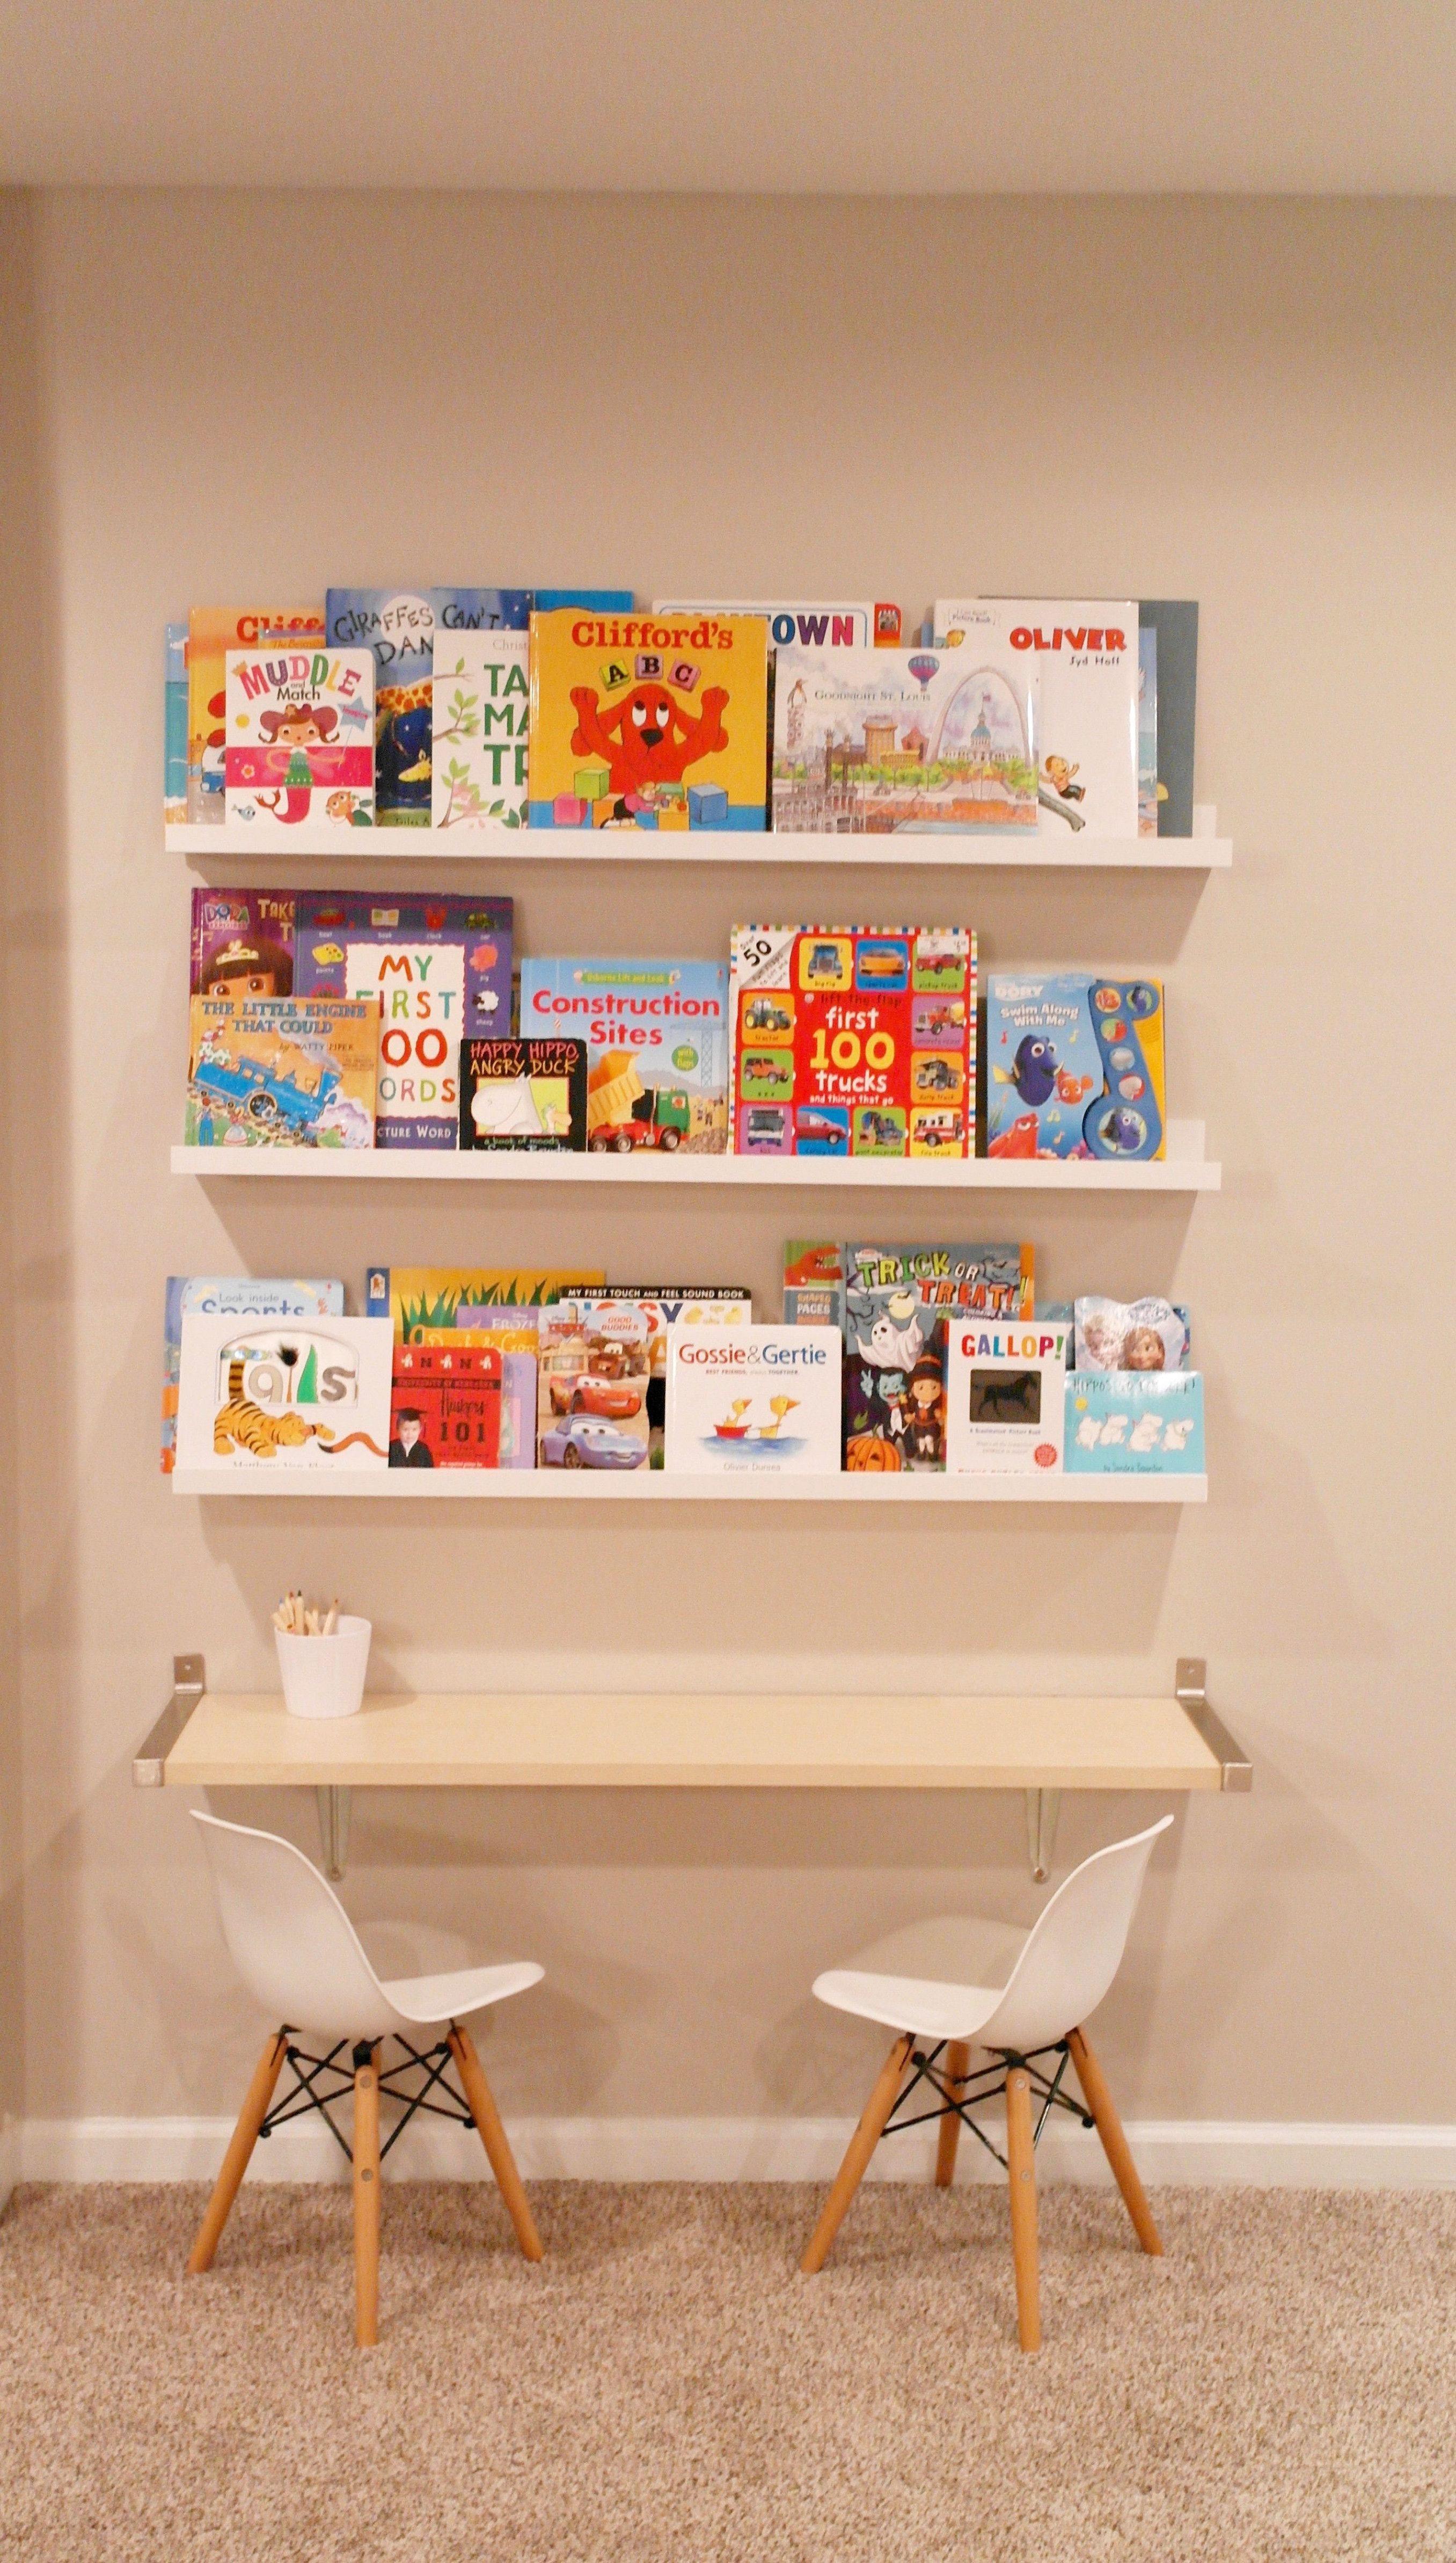 30 Best Playroom Ideas For Small And Large Spaces Kids Bedroom Organization Kids Room Organization Kids Toy Organization